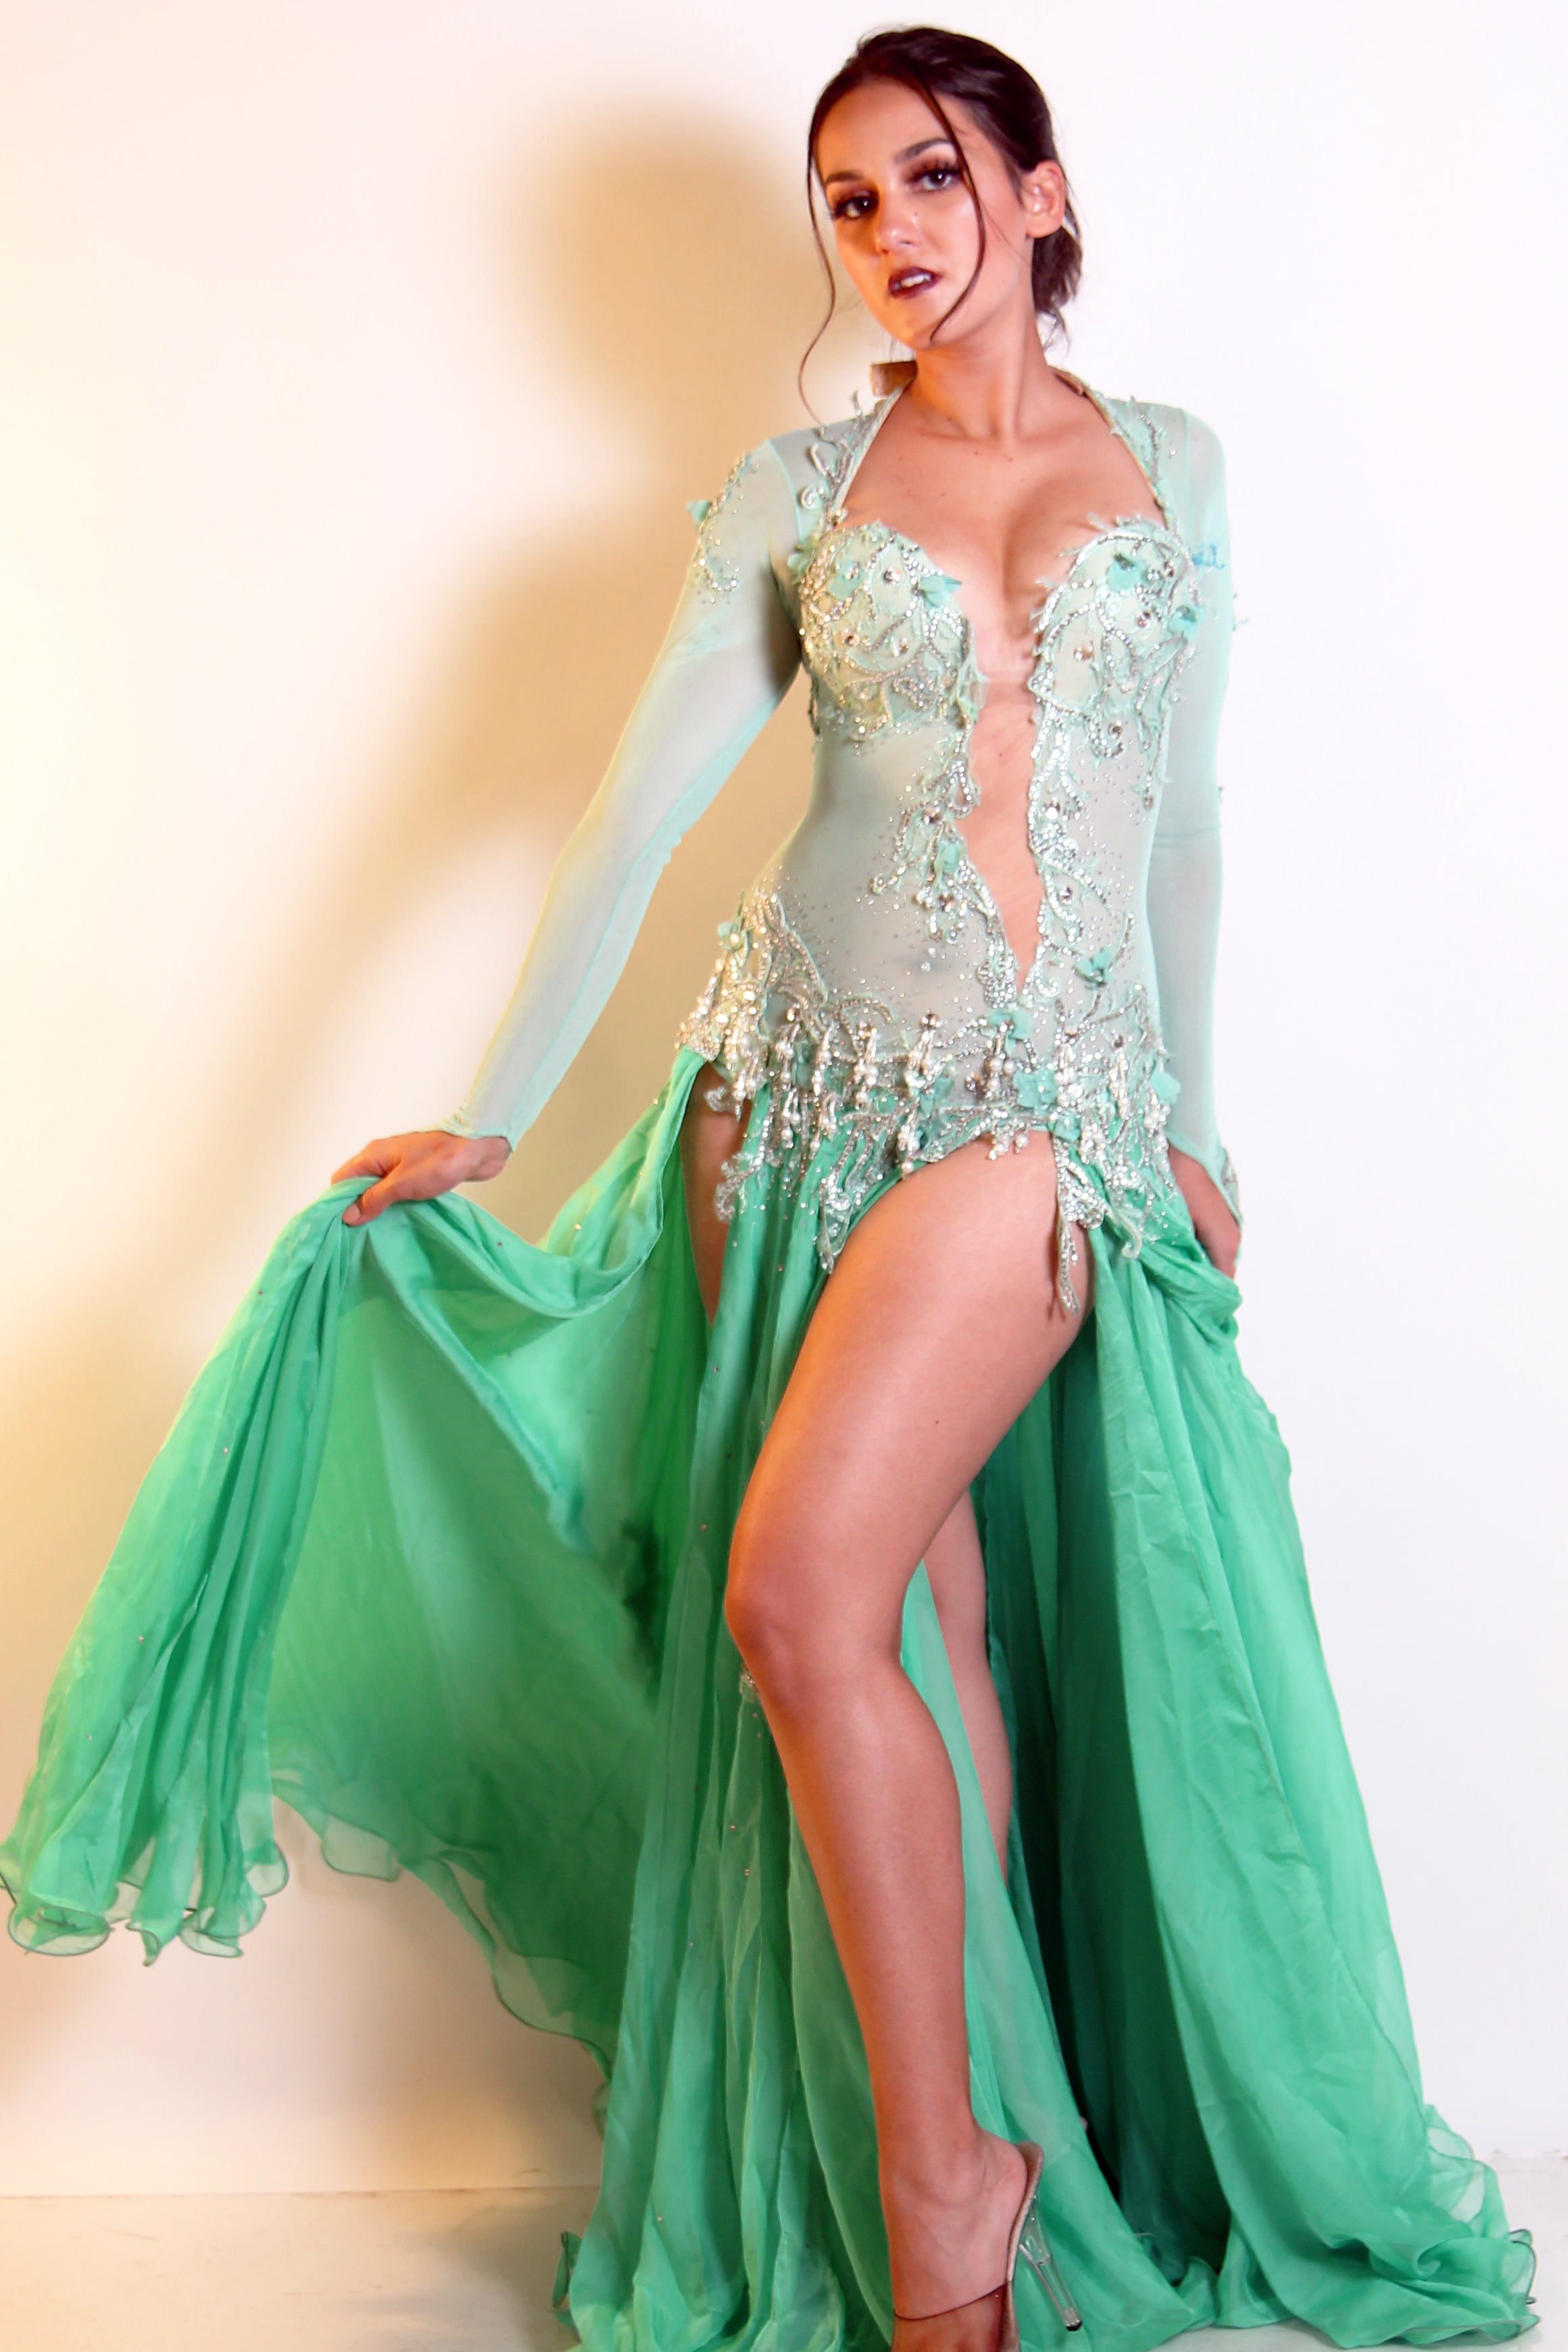 Eman Zaki One-Piece Costume 23817